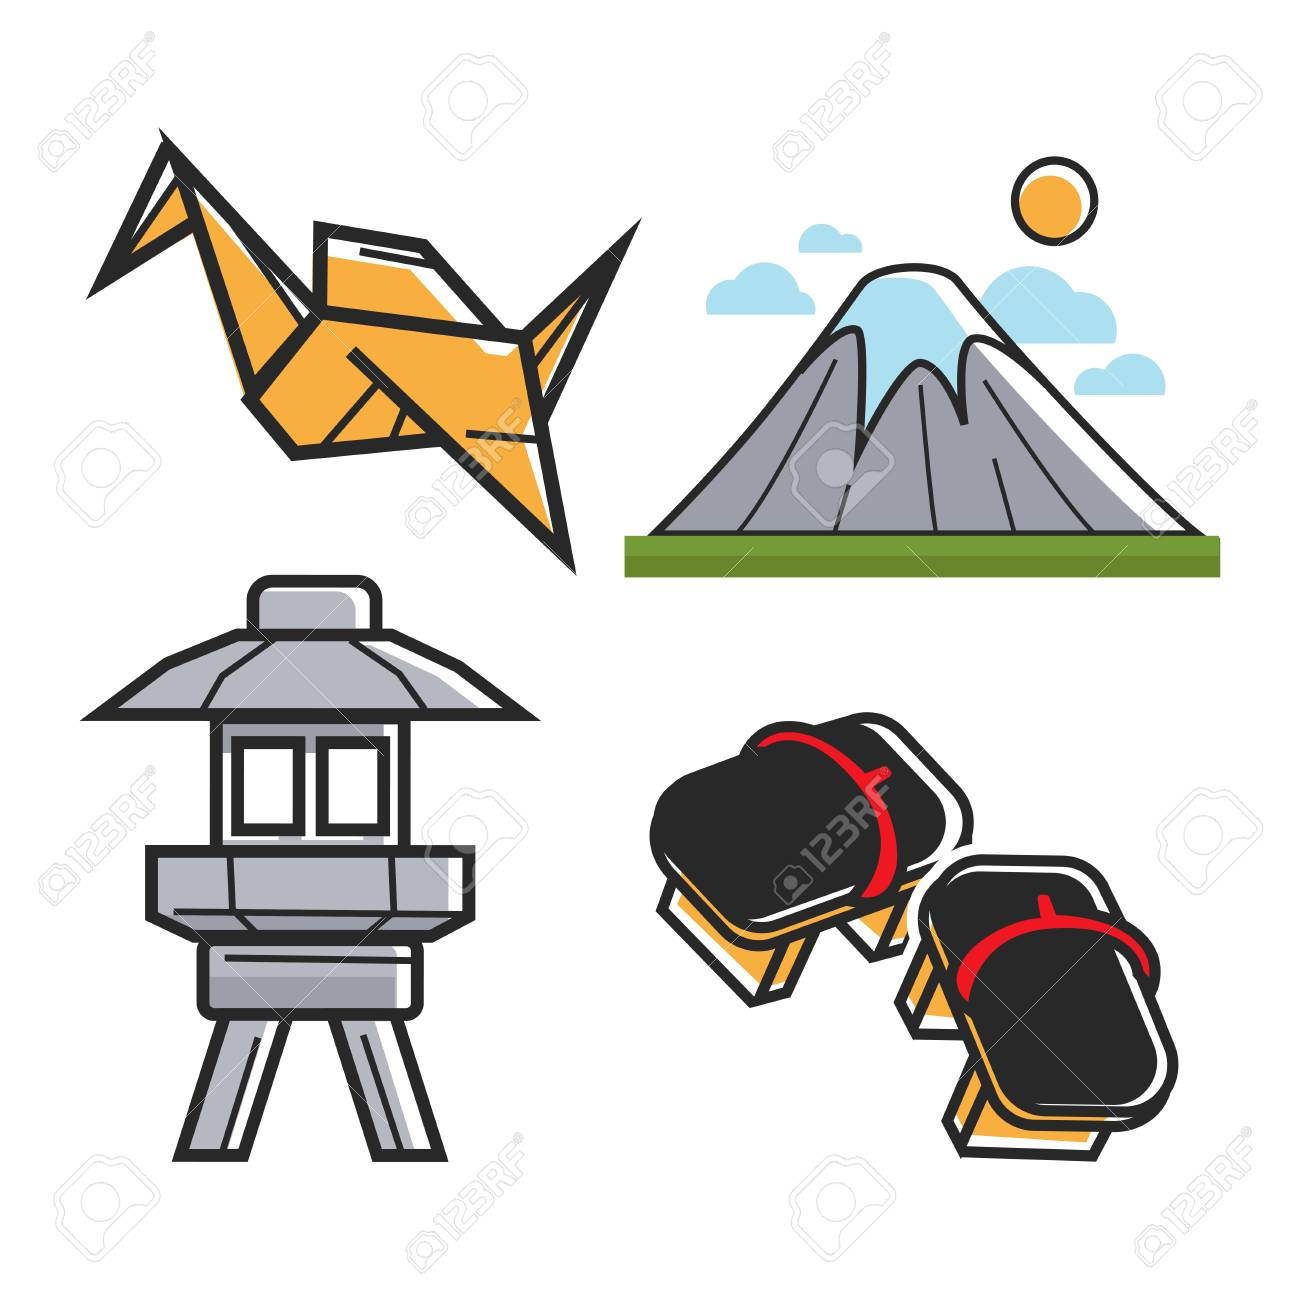 Japan Travel Symbols And Culture Or Famous Landmark Attractions